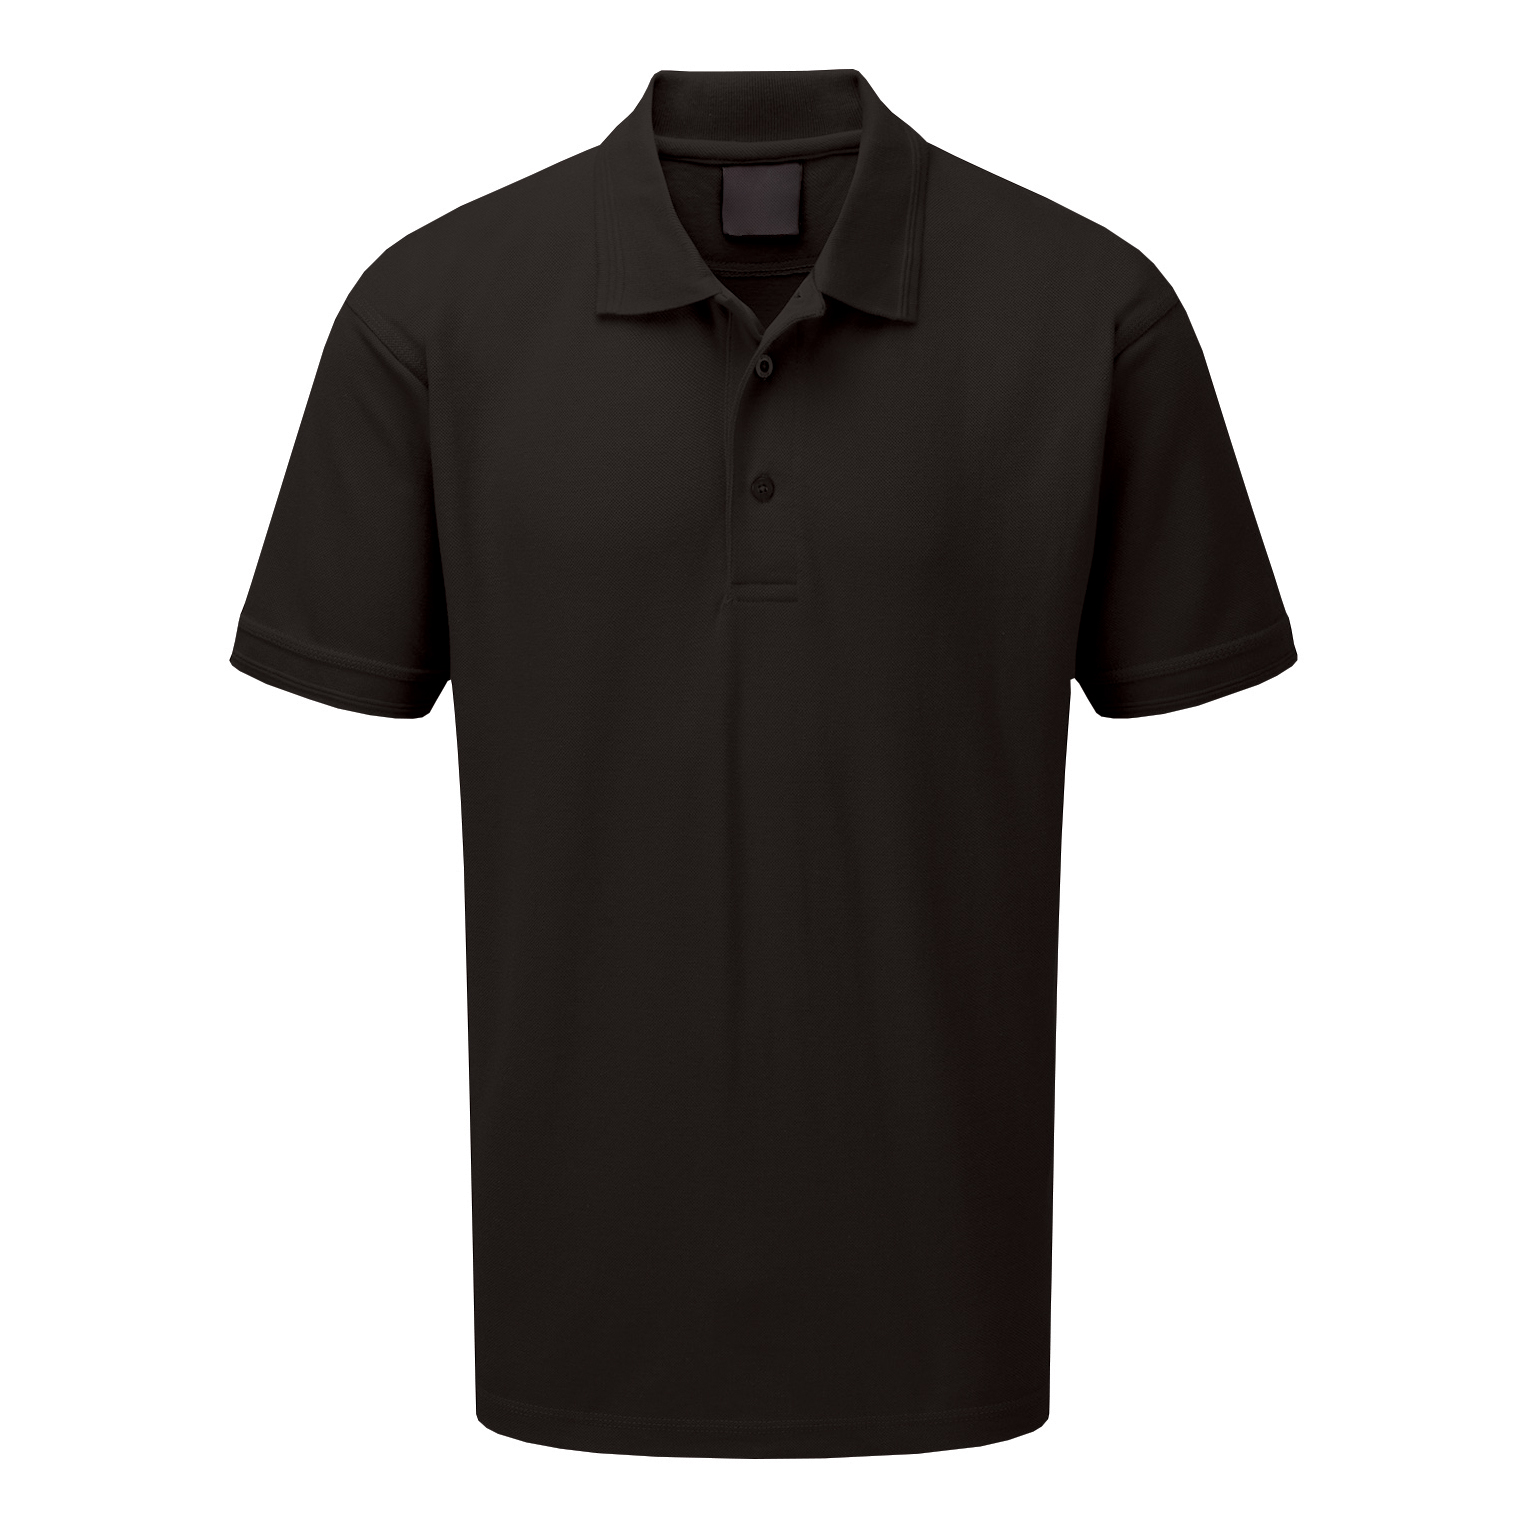 Polo Shirt Classic Polycotton Small Black 1-3 Days Lead Time